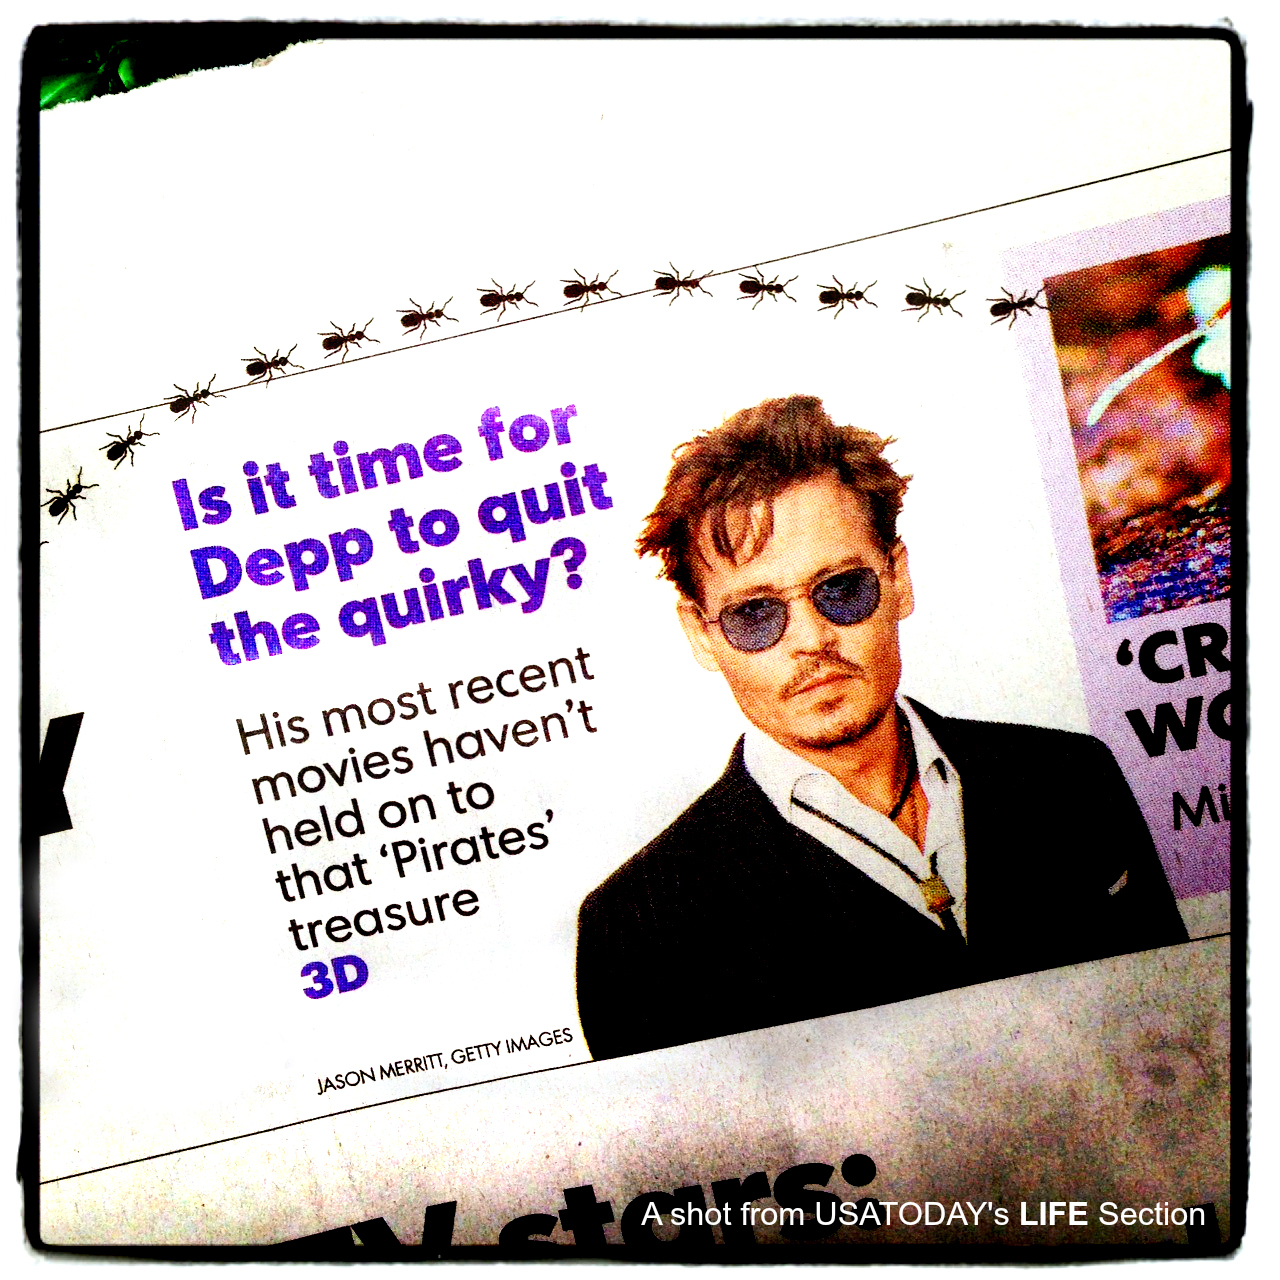 Has Johnny Depp Lost His Box Office Luster? POPgoesTheWeek Weighs In For USATODAY.